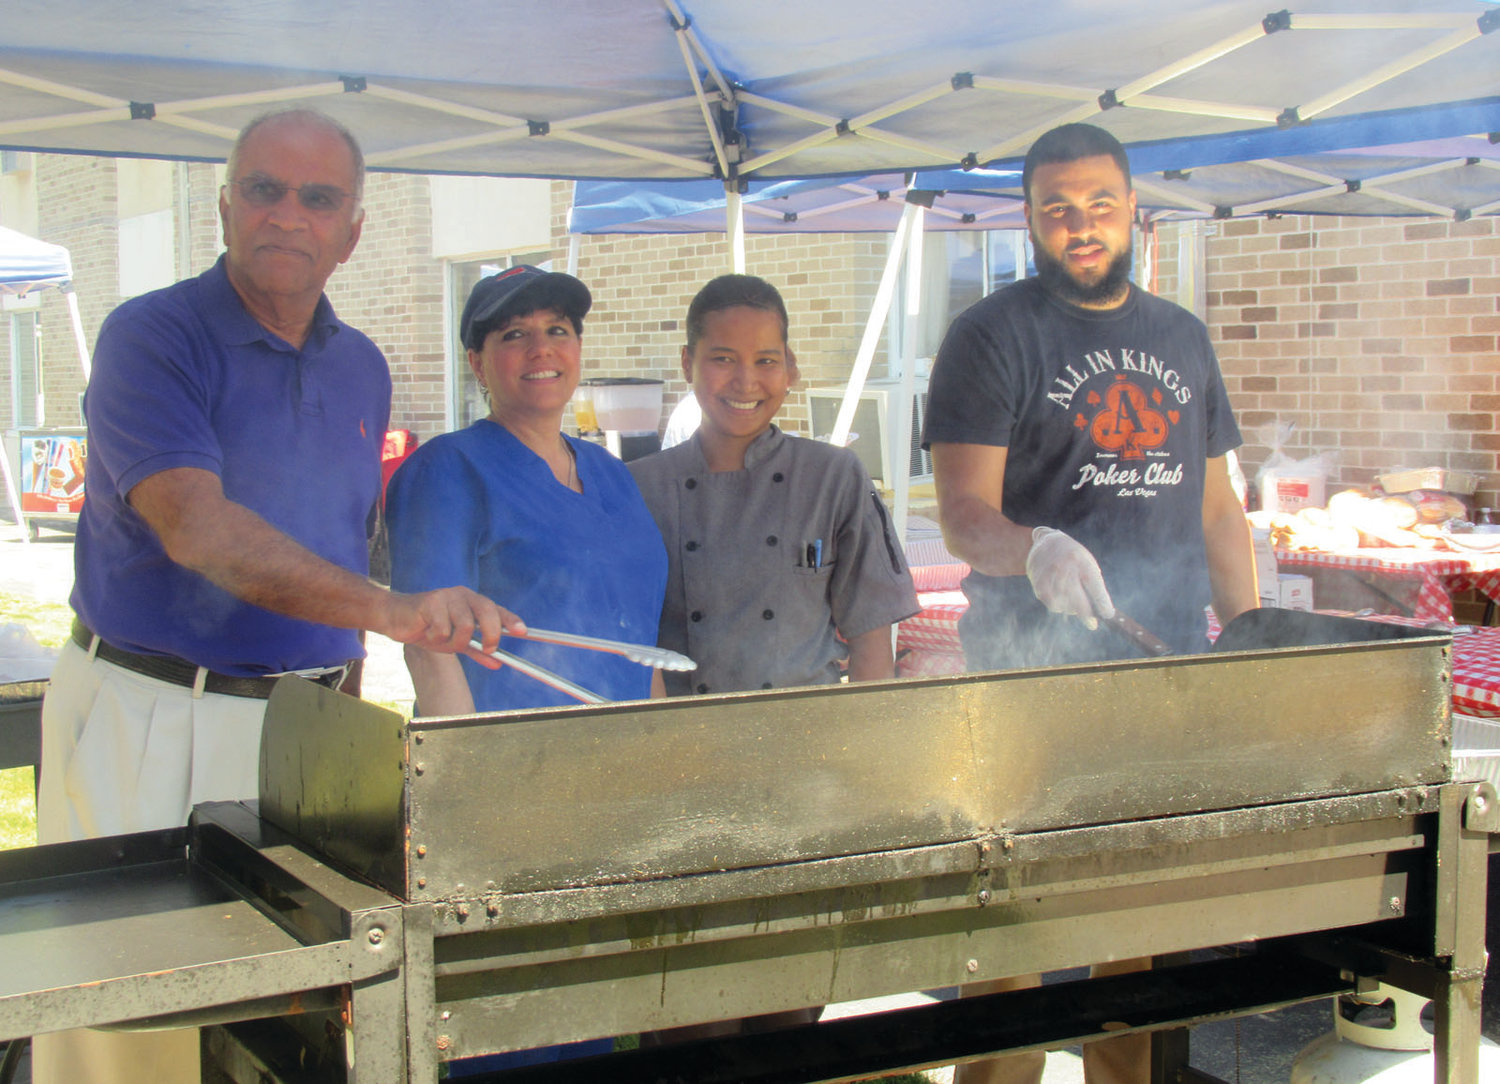 DELIGHTFUL DUTY: Akshay Talwar, left, owner and CEO of the Briarcliffe Campus, joins staffers Sharon Botelho, Henary Yan and Brian Razzino at the grill during Friday's old-fashioned cookout.